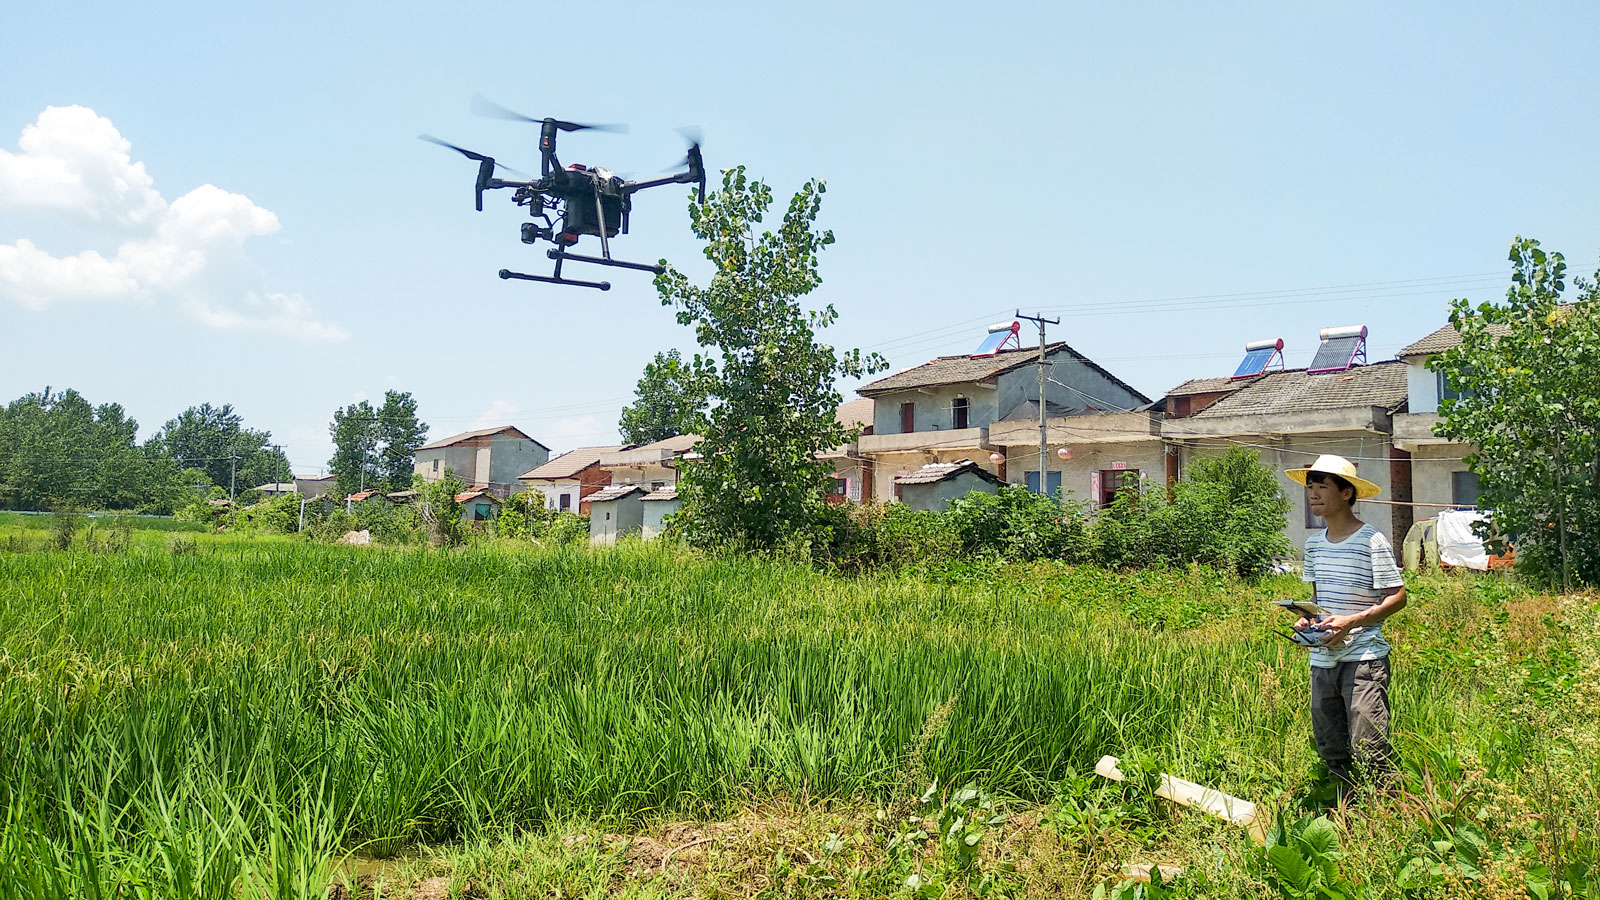 Flying the DJI Matrice 200 for collecting multispectral images